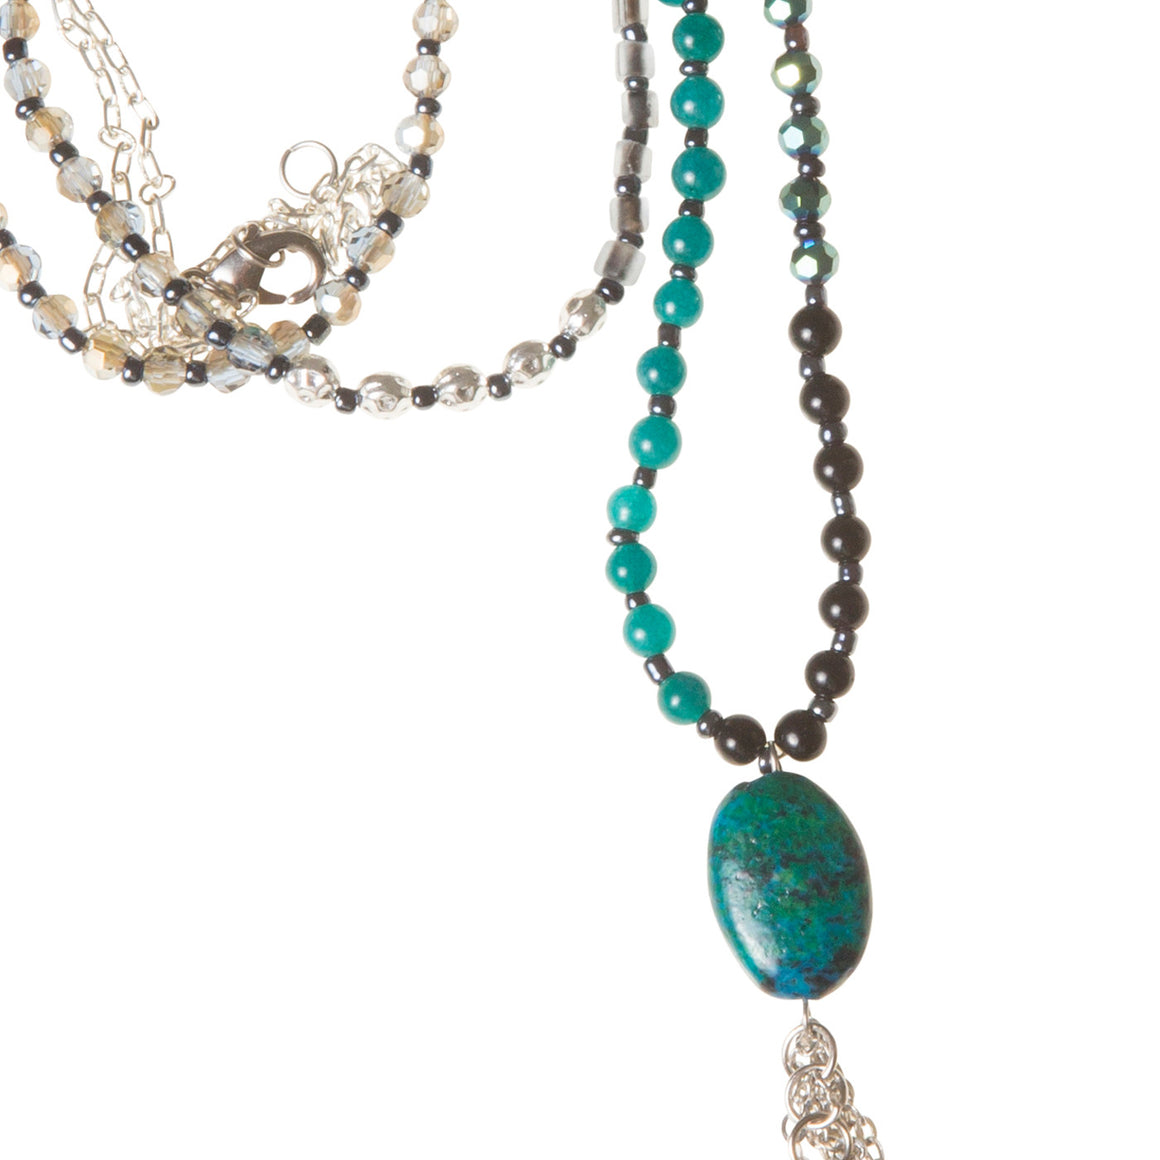 Daily Mala Necklace : peacock/silver